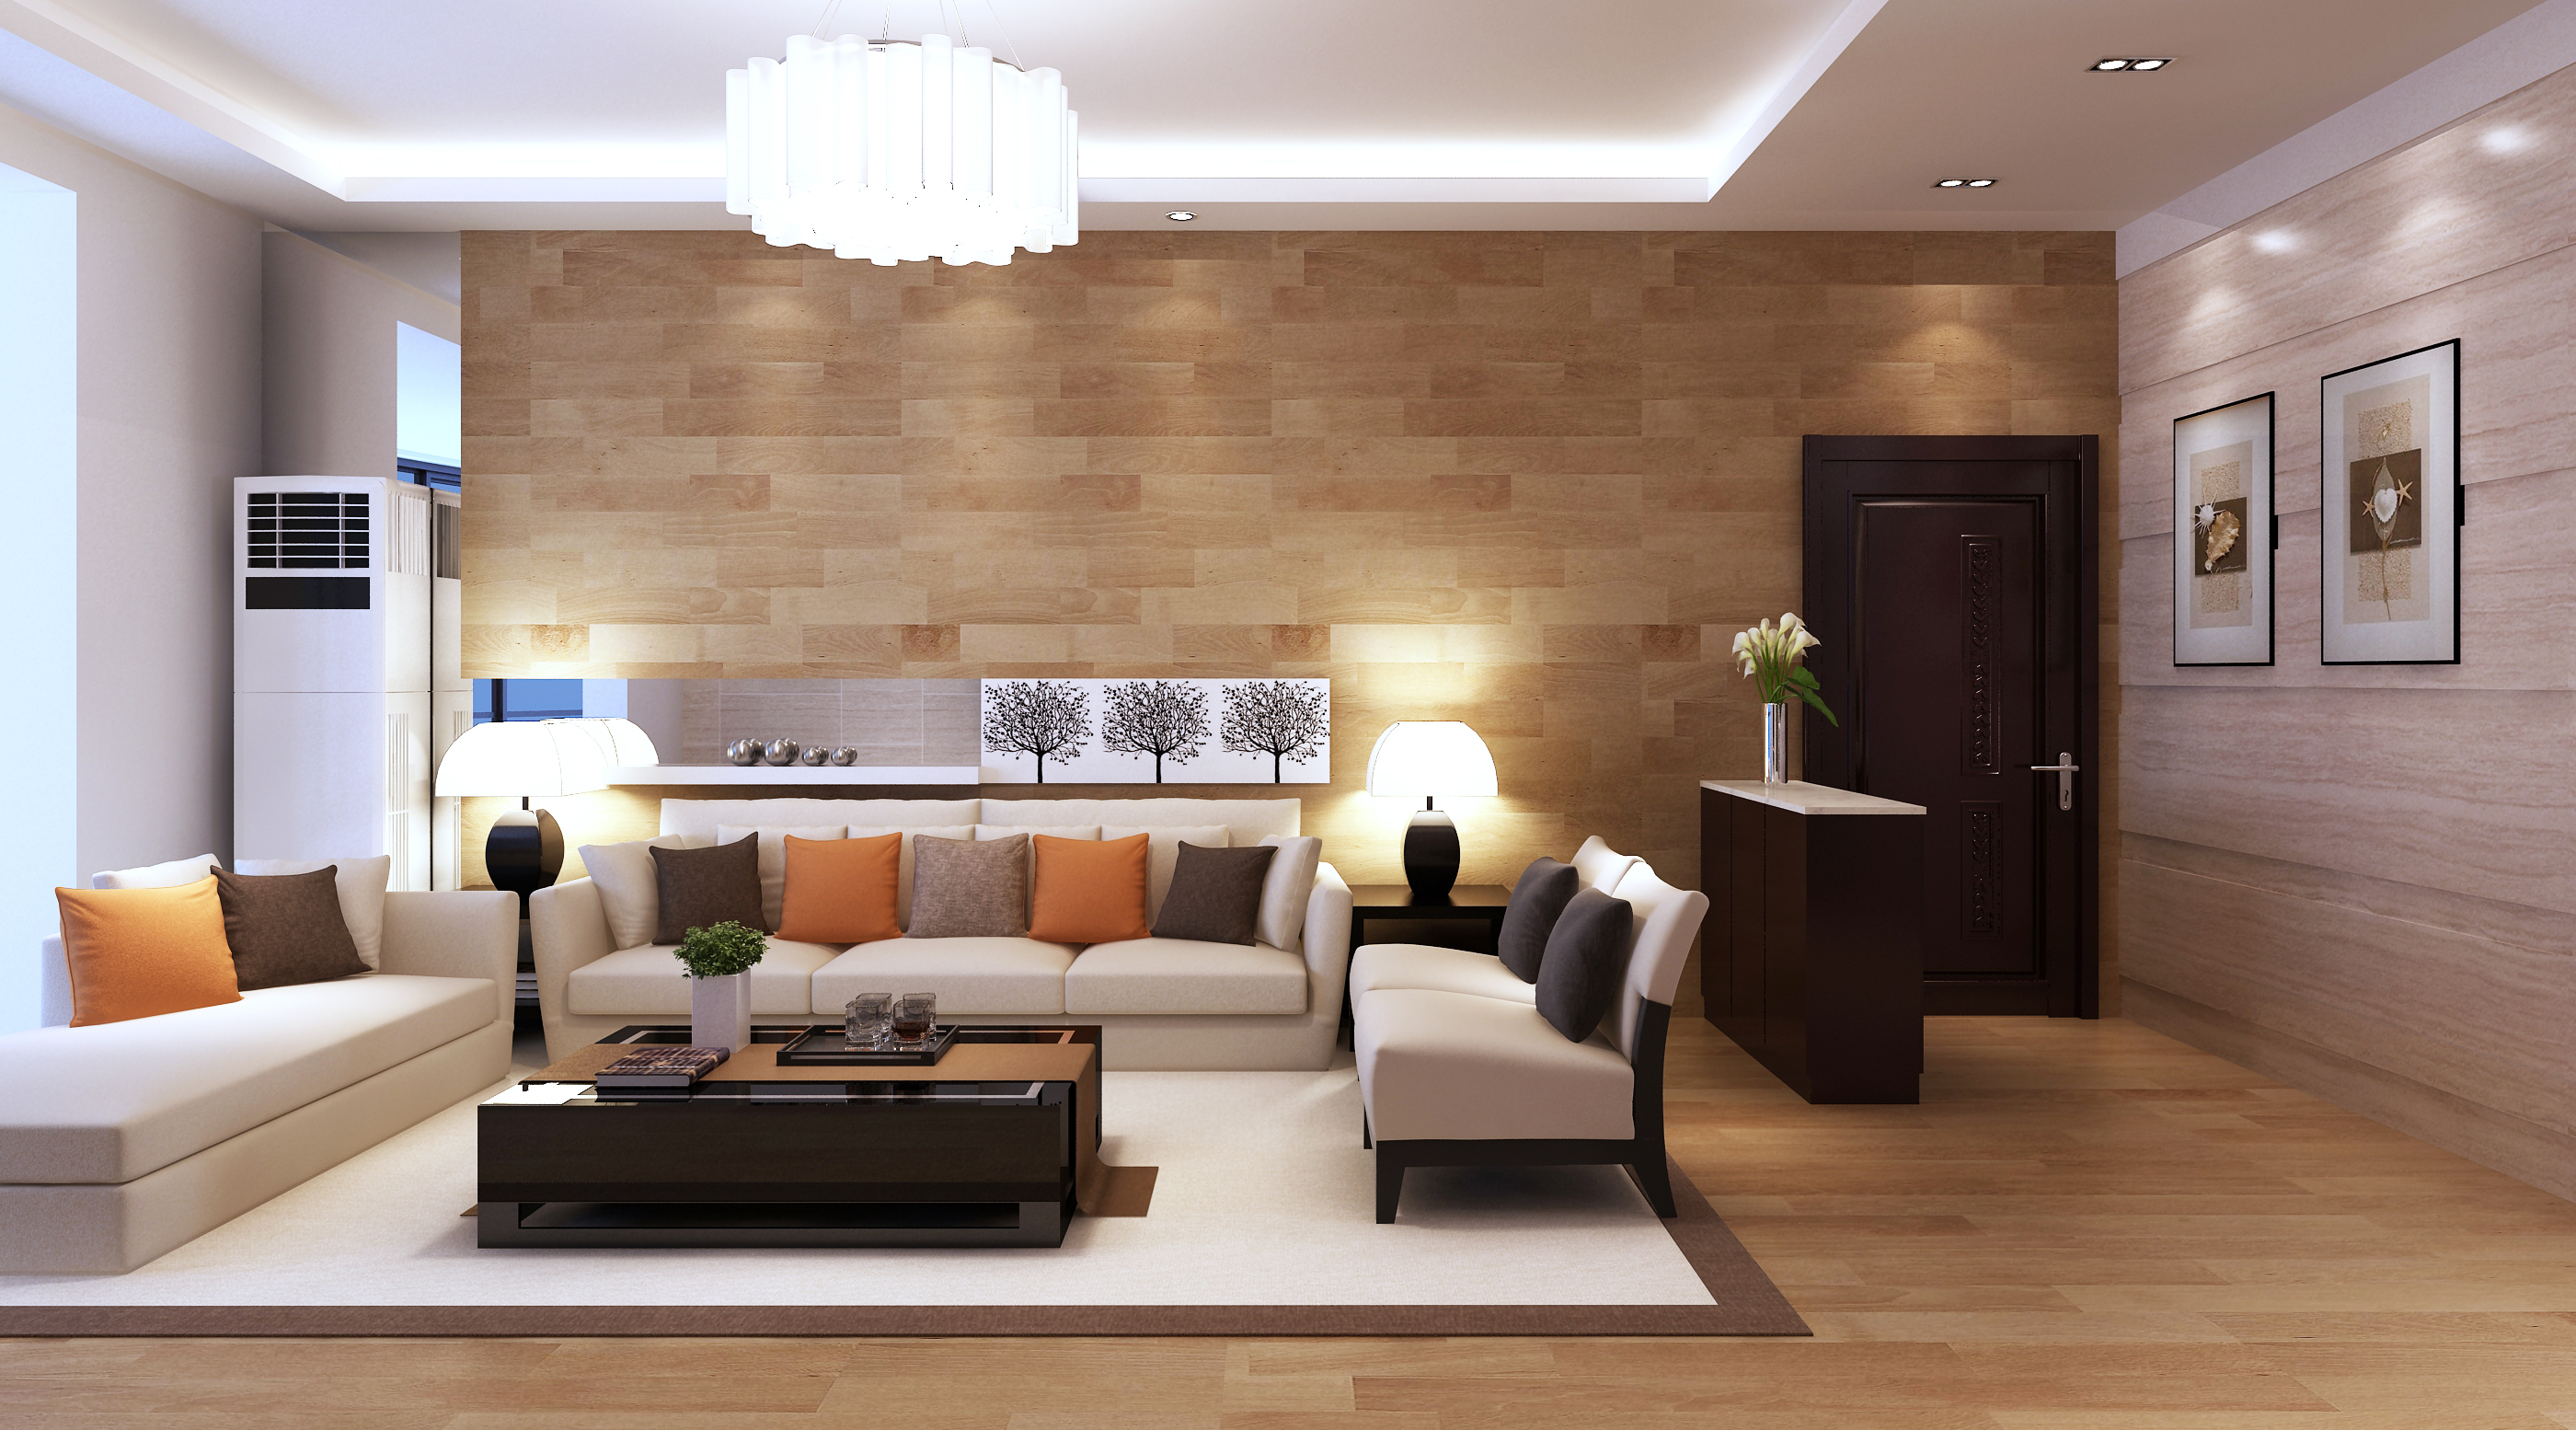 Living Room Model Living Room living room interior design models modern model max 3